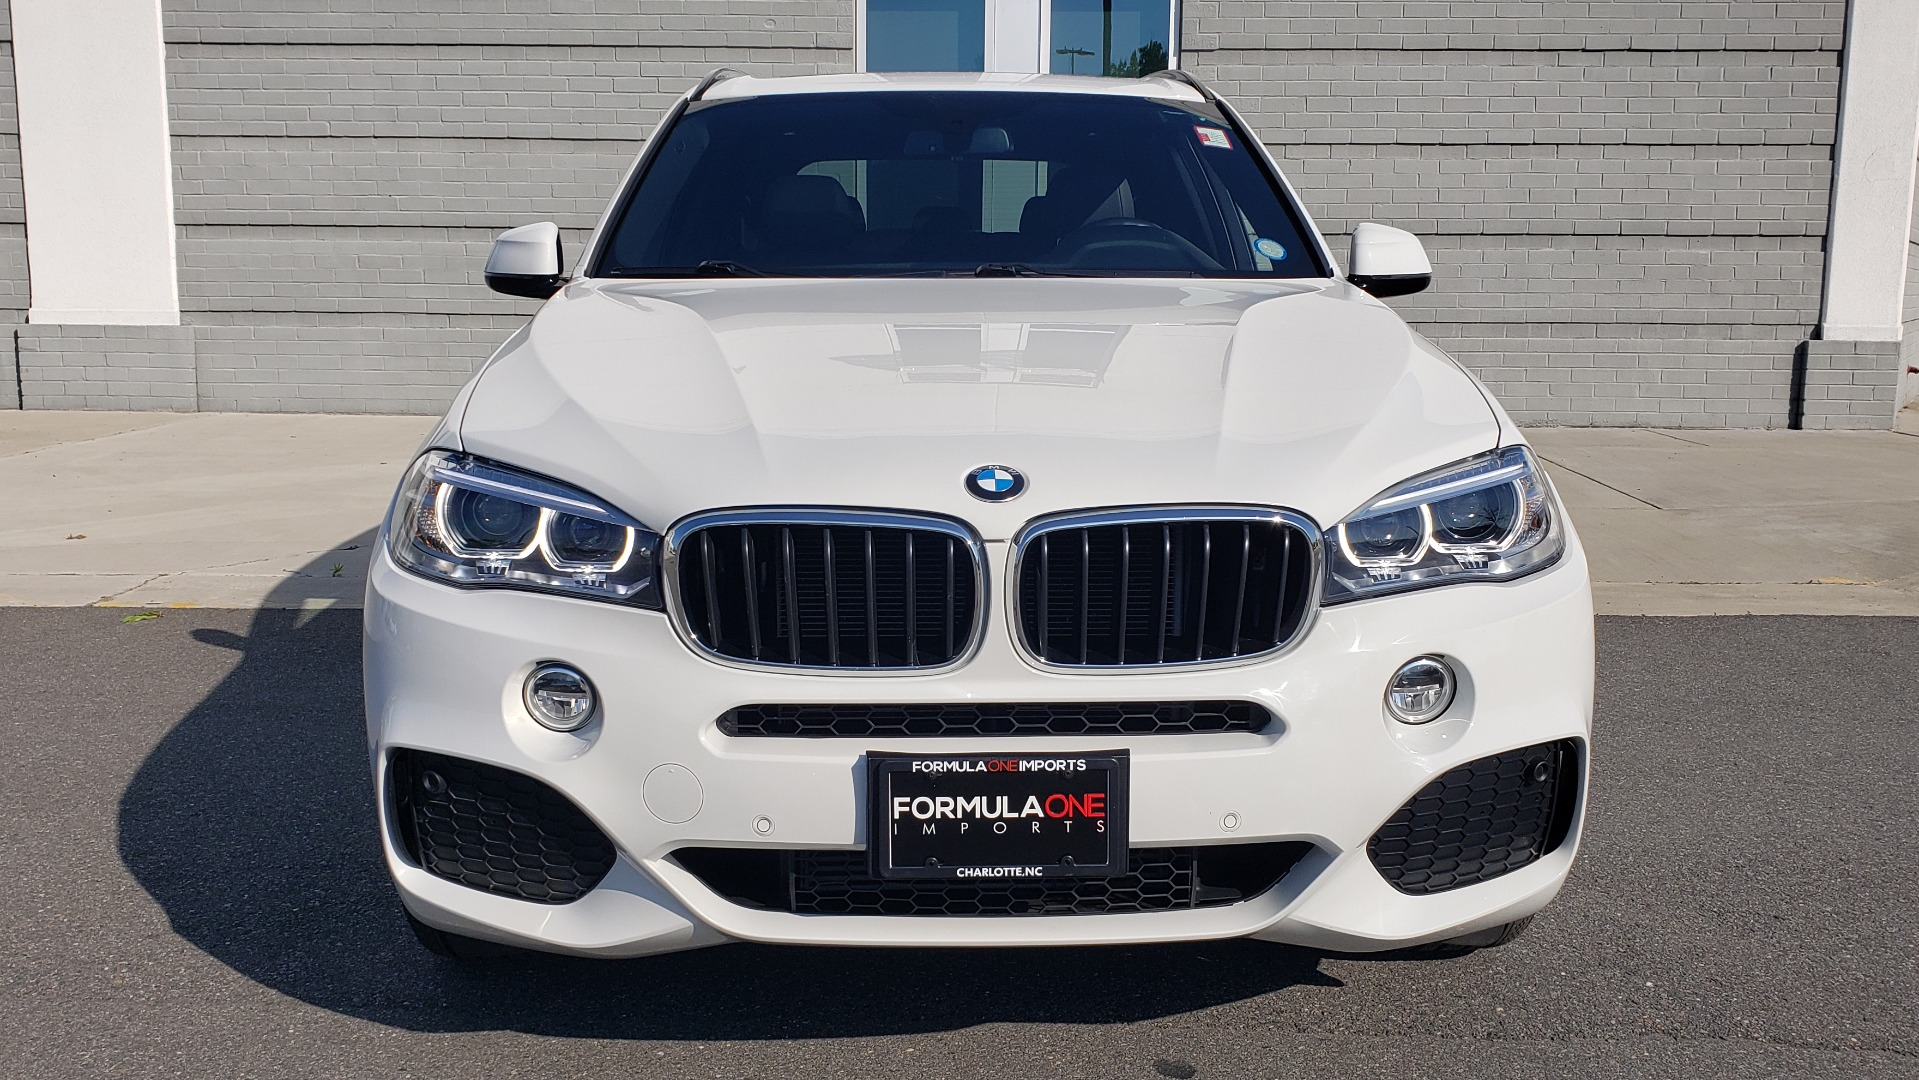 Used 2018 BMW X5 XDRIVE35I / M-SPORT / NAV / SUNROOF / H/K SND / REARVIEW for sale Sold at Formula Imports in Charlotte NC 28227 19